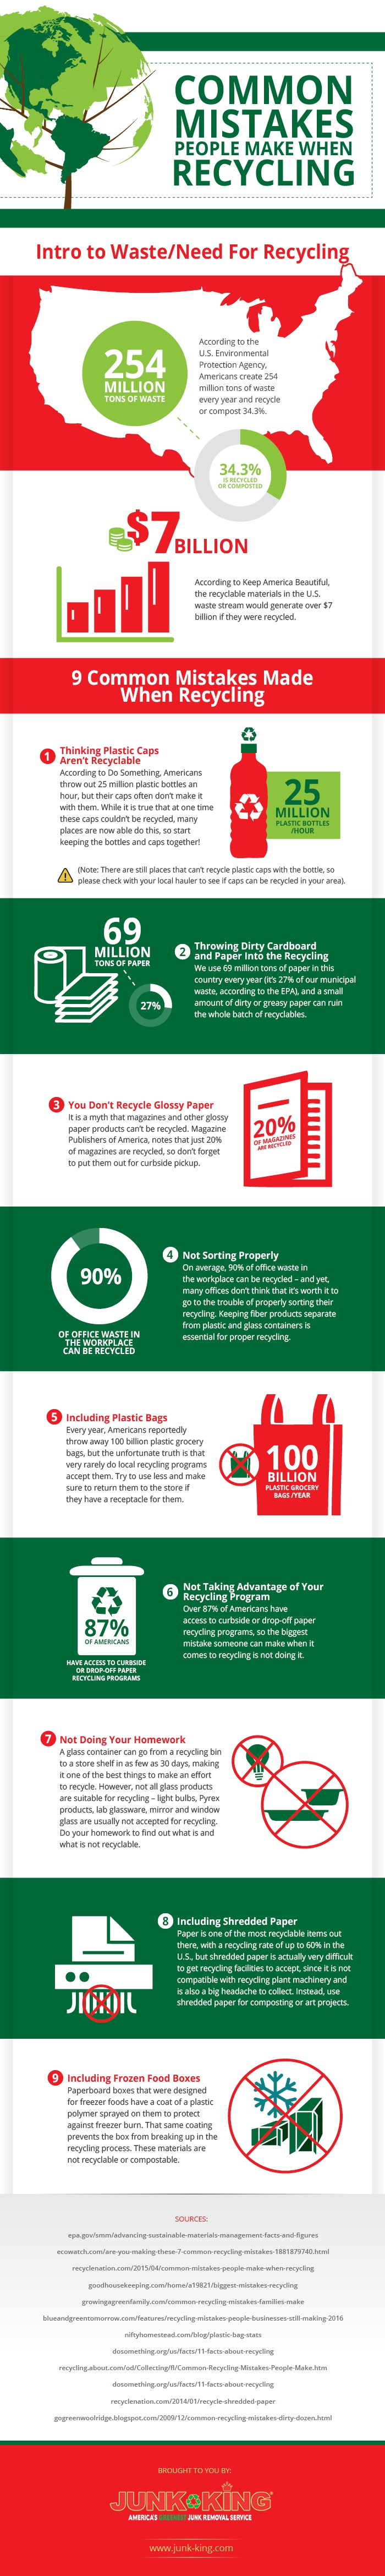 http://info.junk-king.com/hs-fs/hubfs/Common_Mistakes_People_Make_When_Recycling_Infographic.jpg?t=1476376735972&width=1050&name=Common_Mistakes_People_Make_When_Recycling_Infographic.jpg